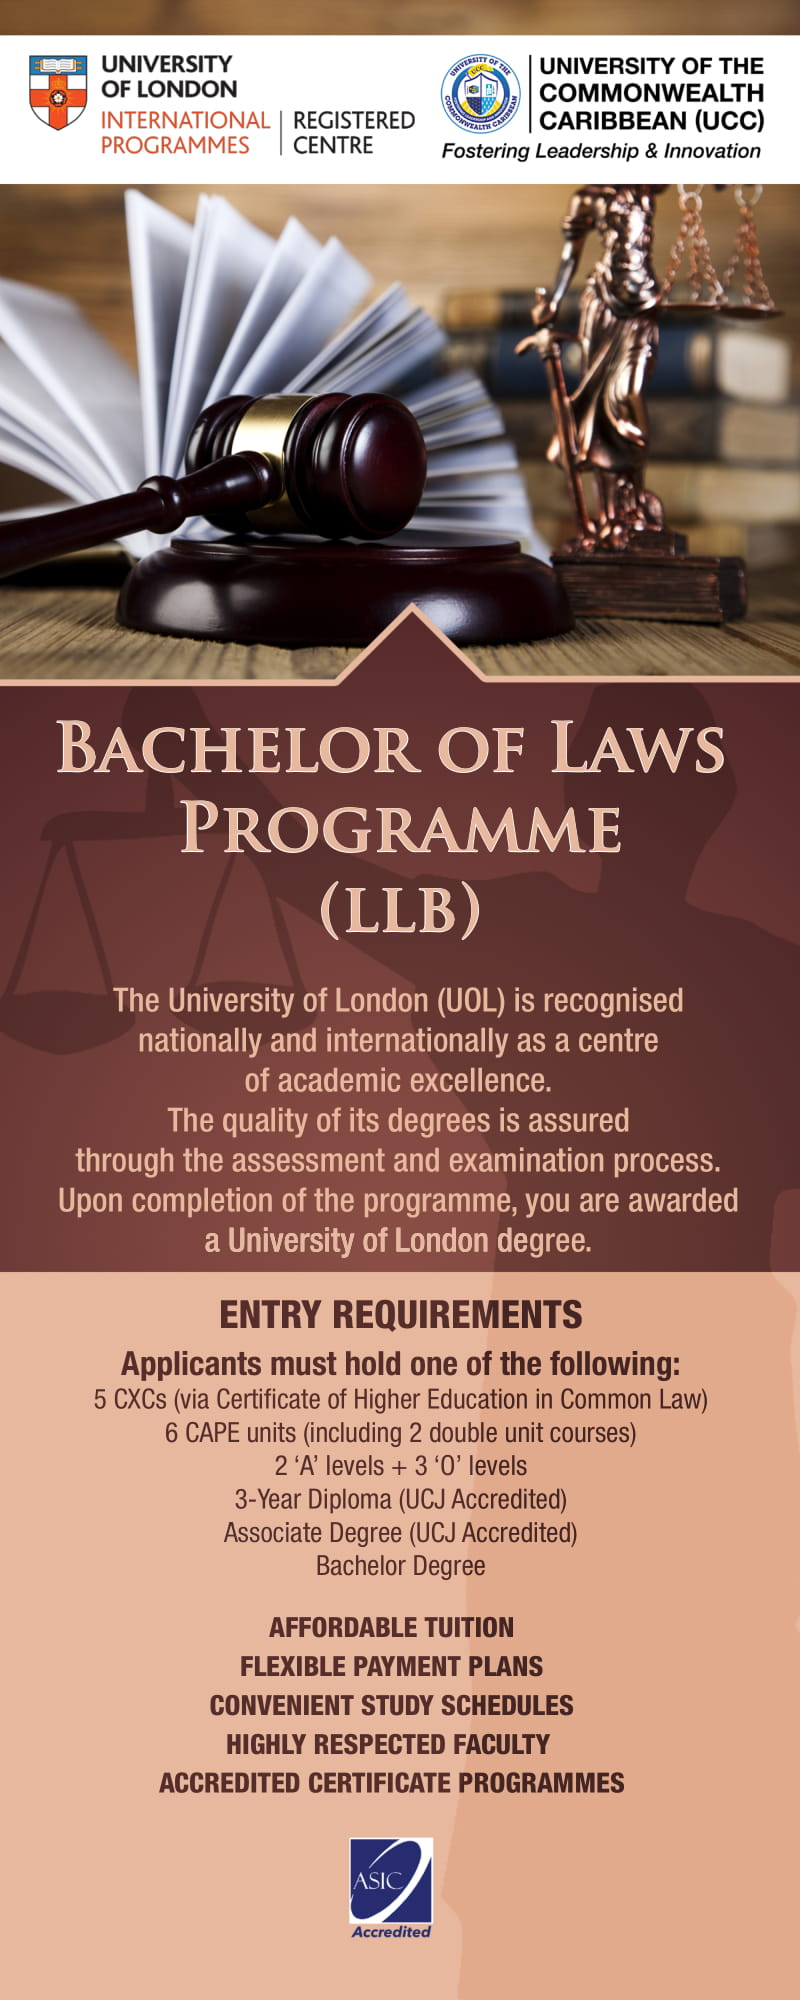 Click for the University of London LLB at UCC Fact Sheet